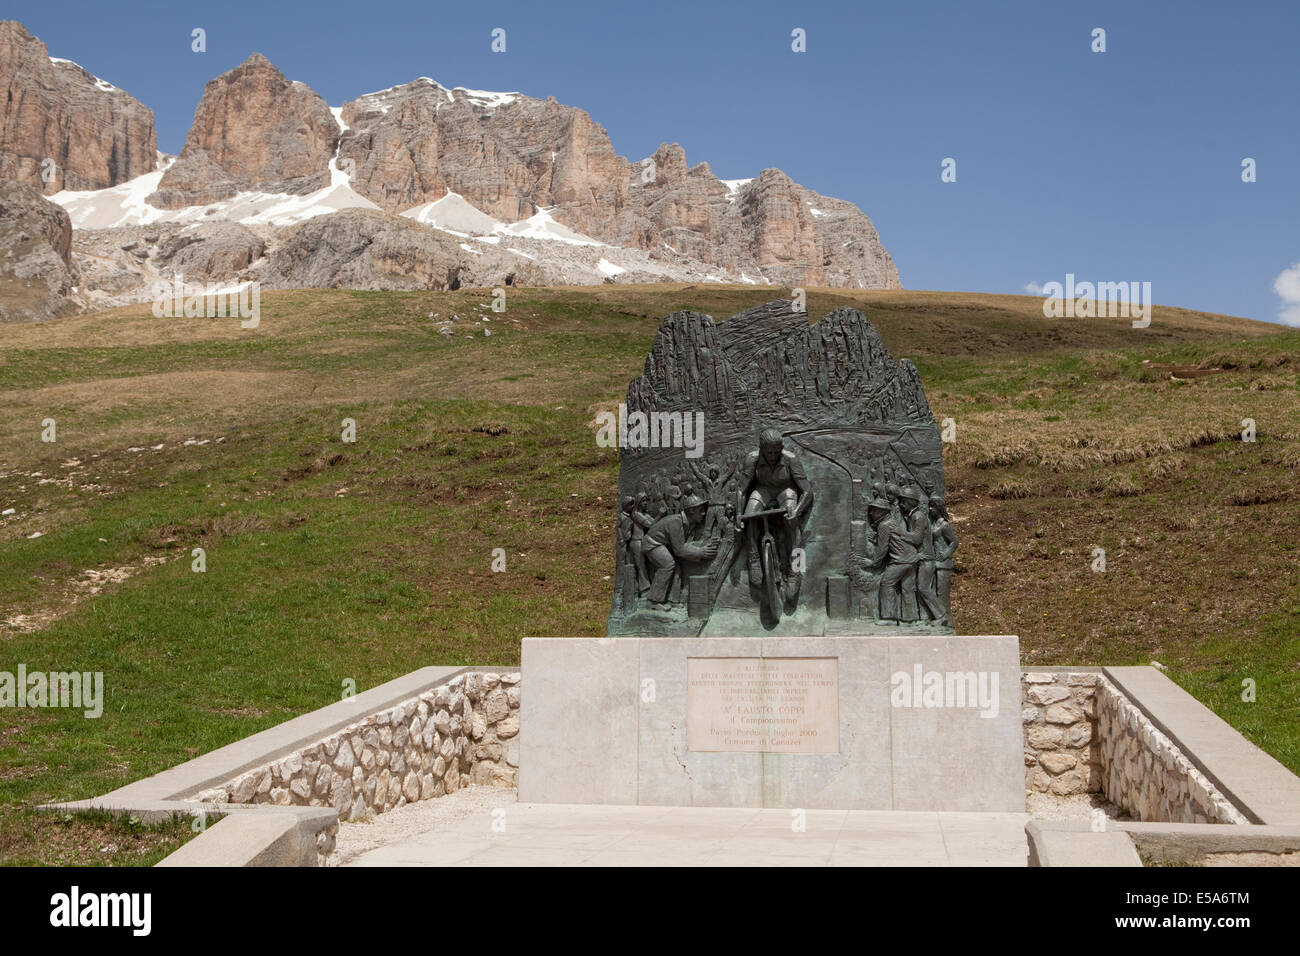 The monument to cyclist Fausto Coppi at the summit of the Pordoi Pass in the Italian Dolomites - Stock Image